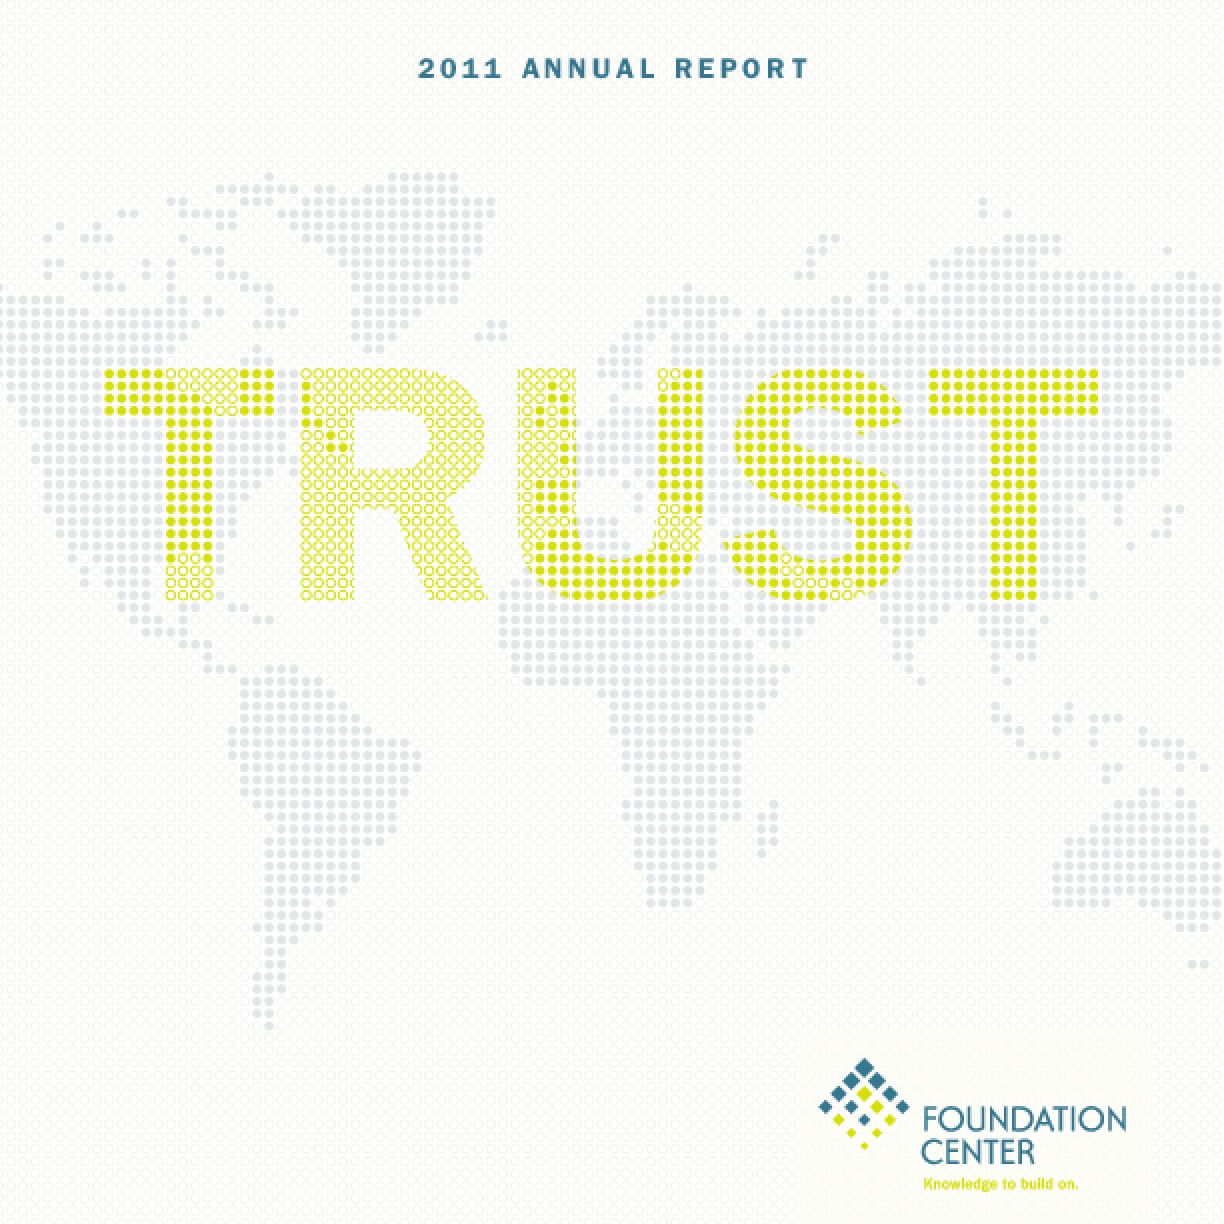 Foundation Center 2011 Annual Report